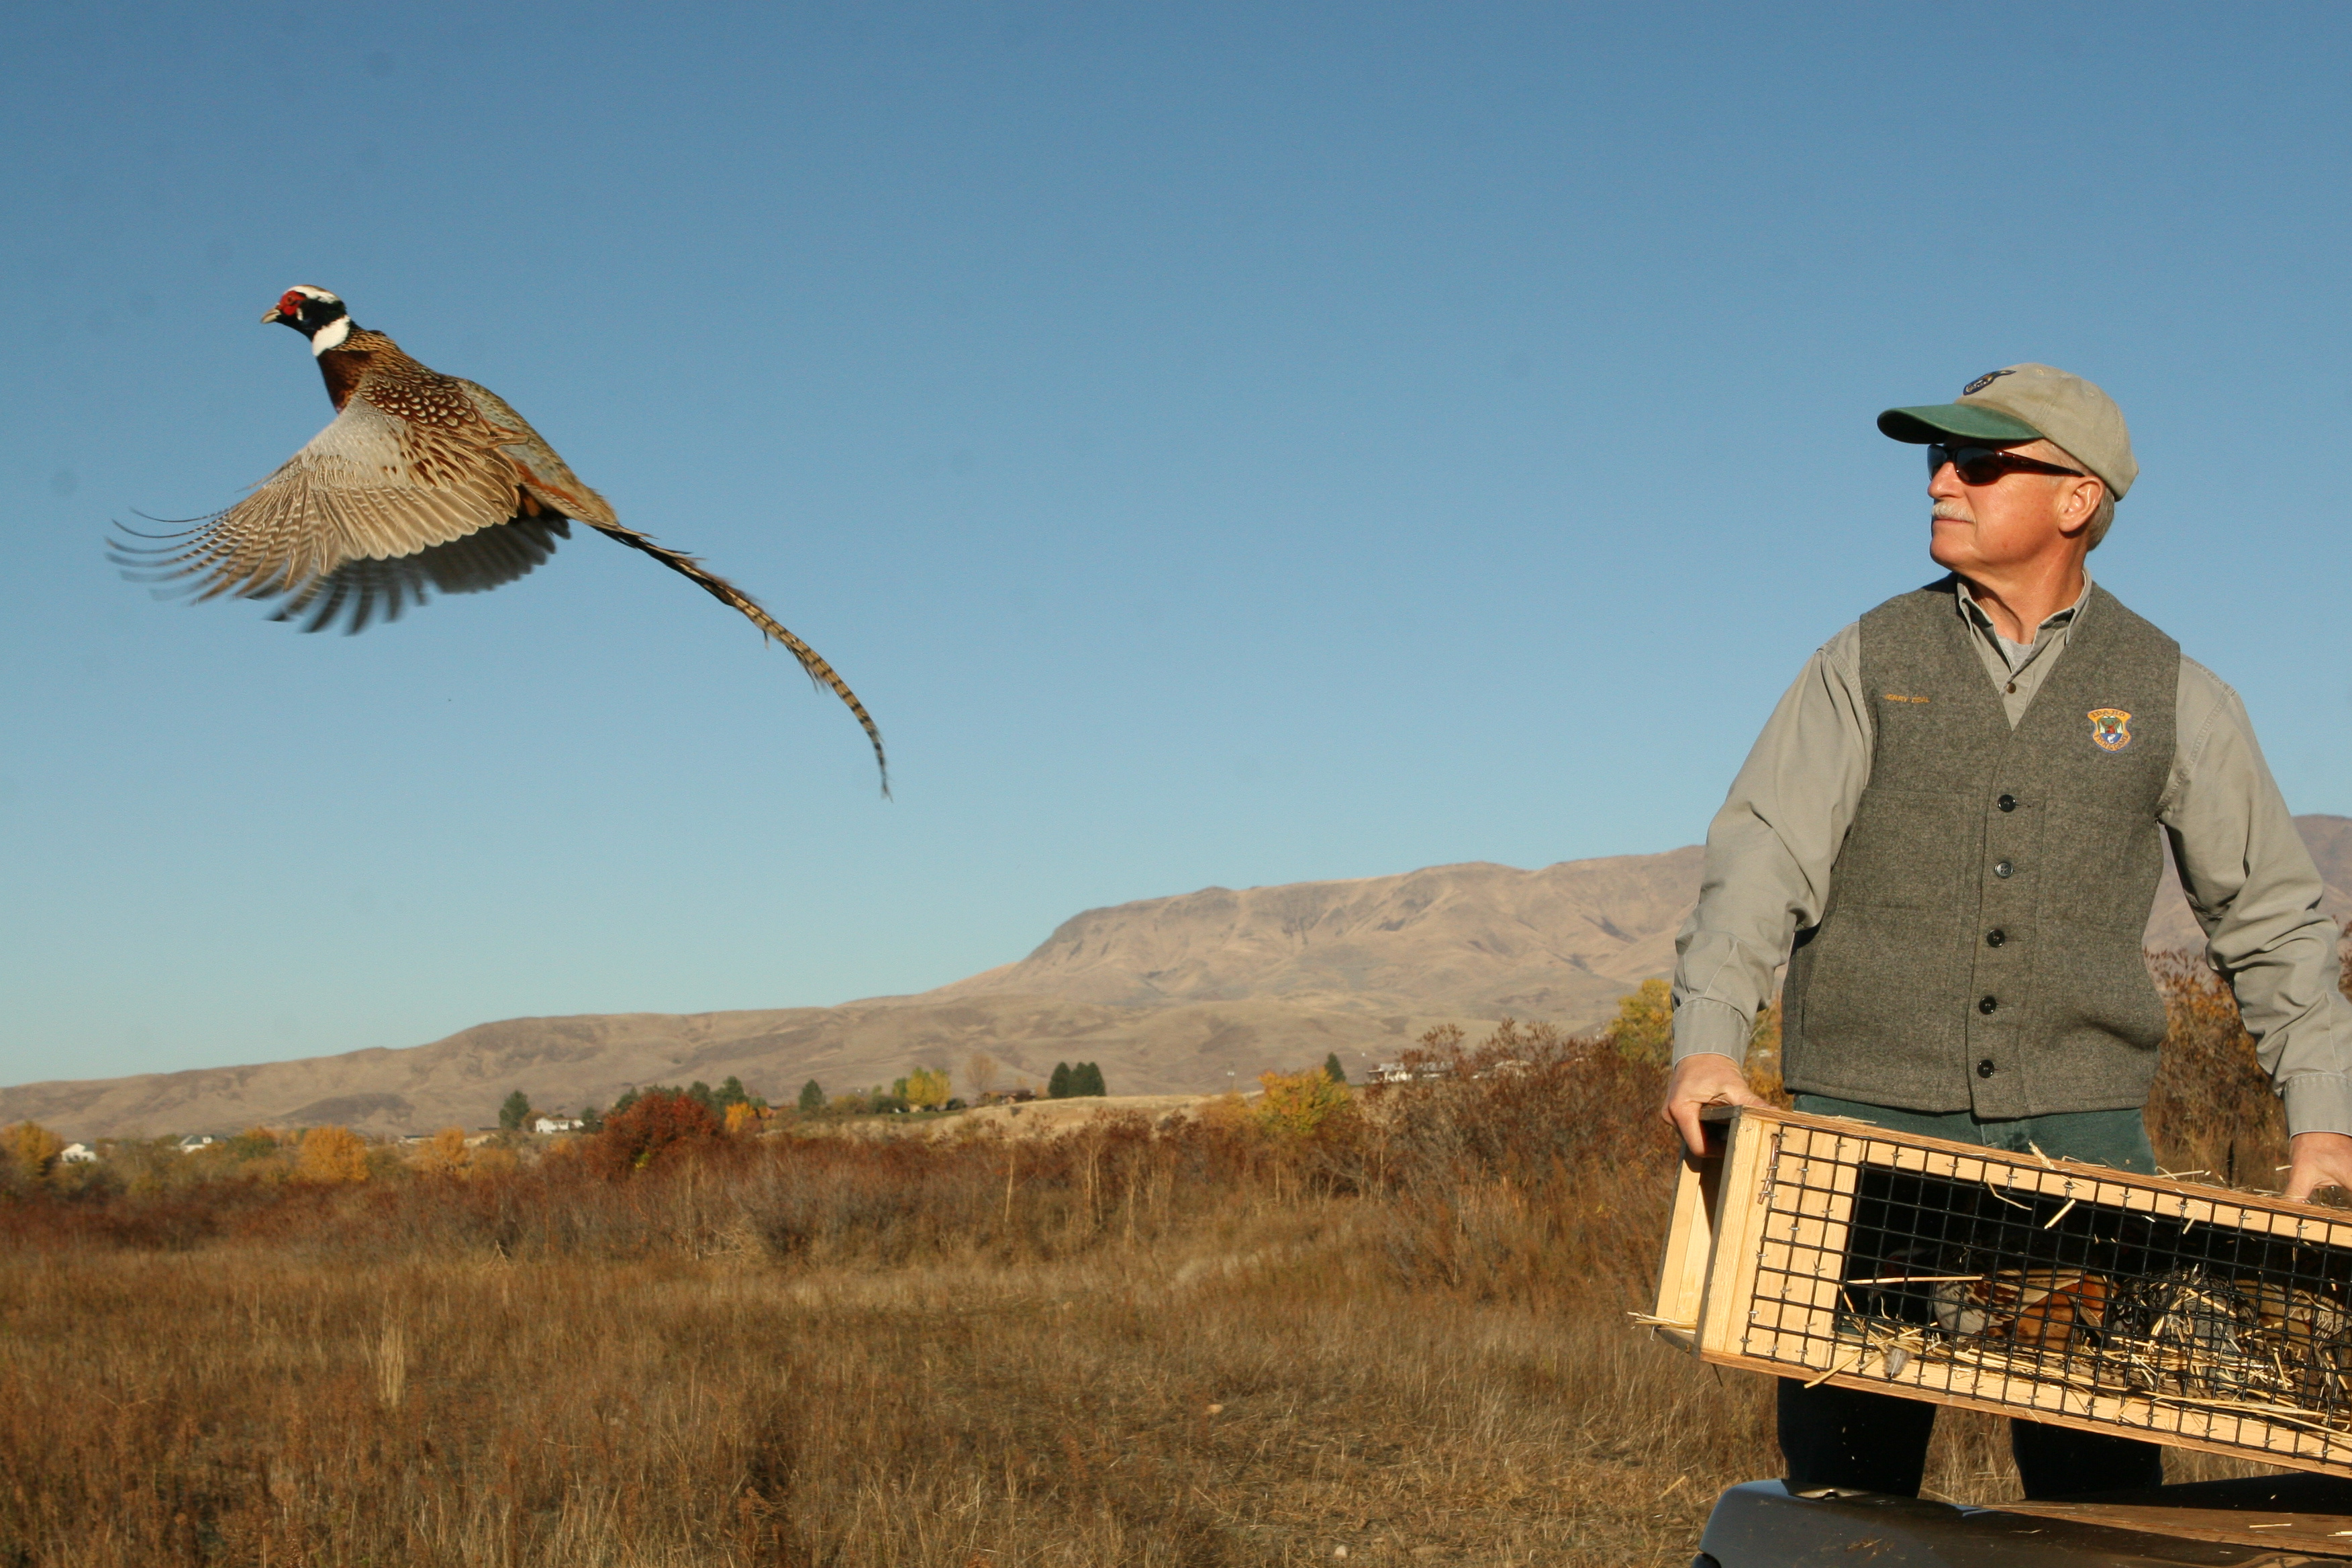 More than 12,000 pen-reared pheasants will be released on southwest Idaho WMAs this fall